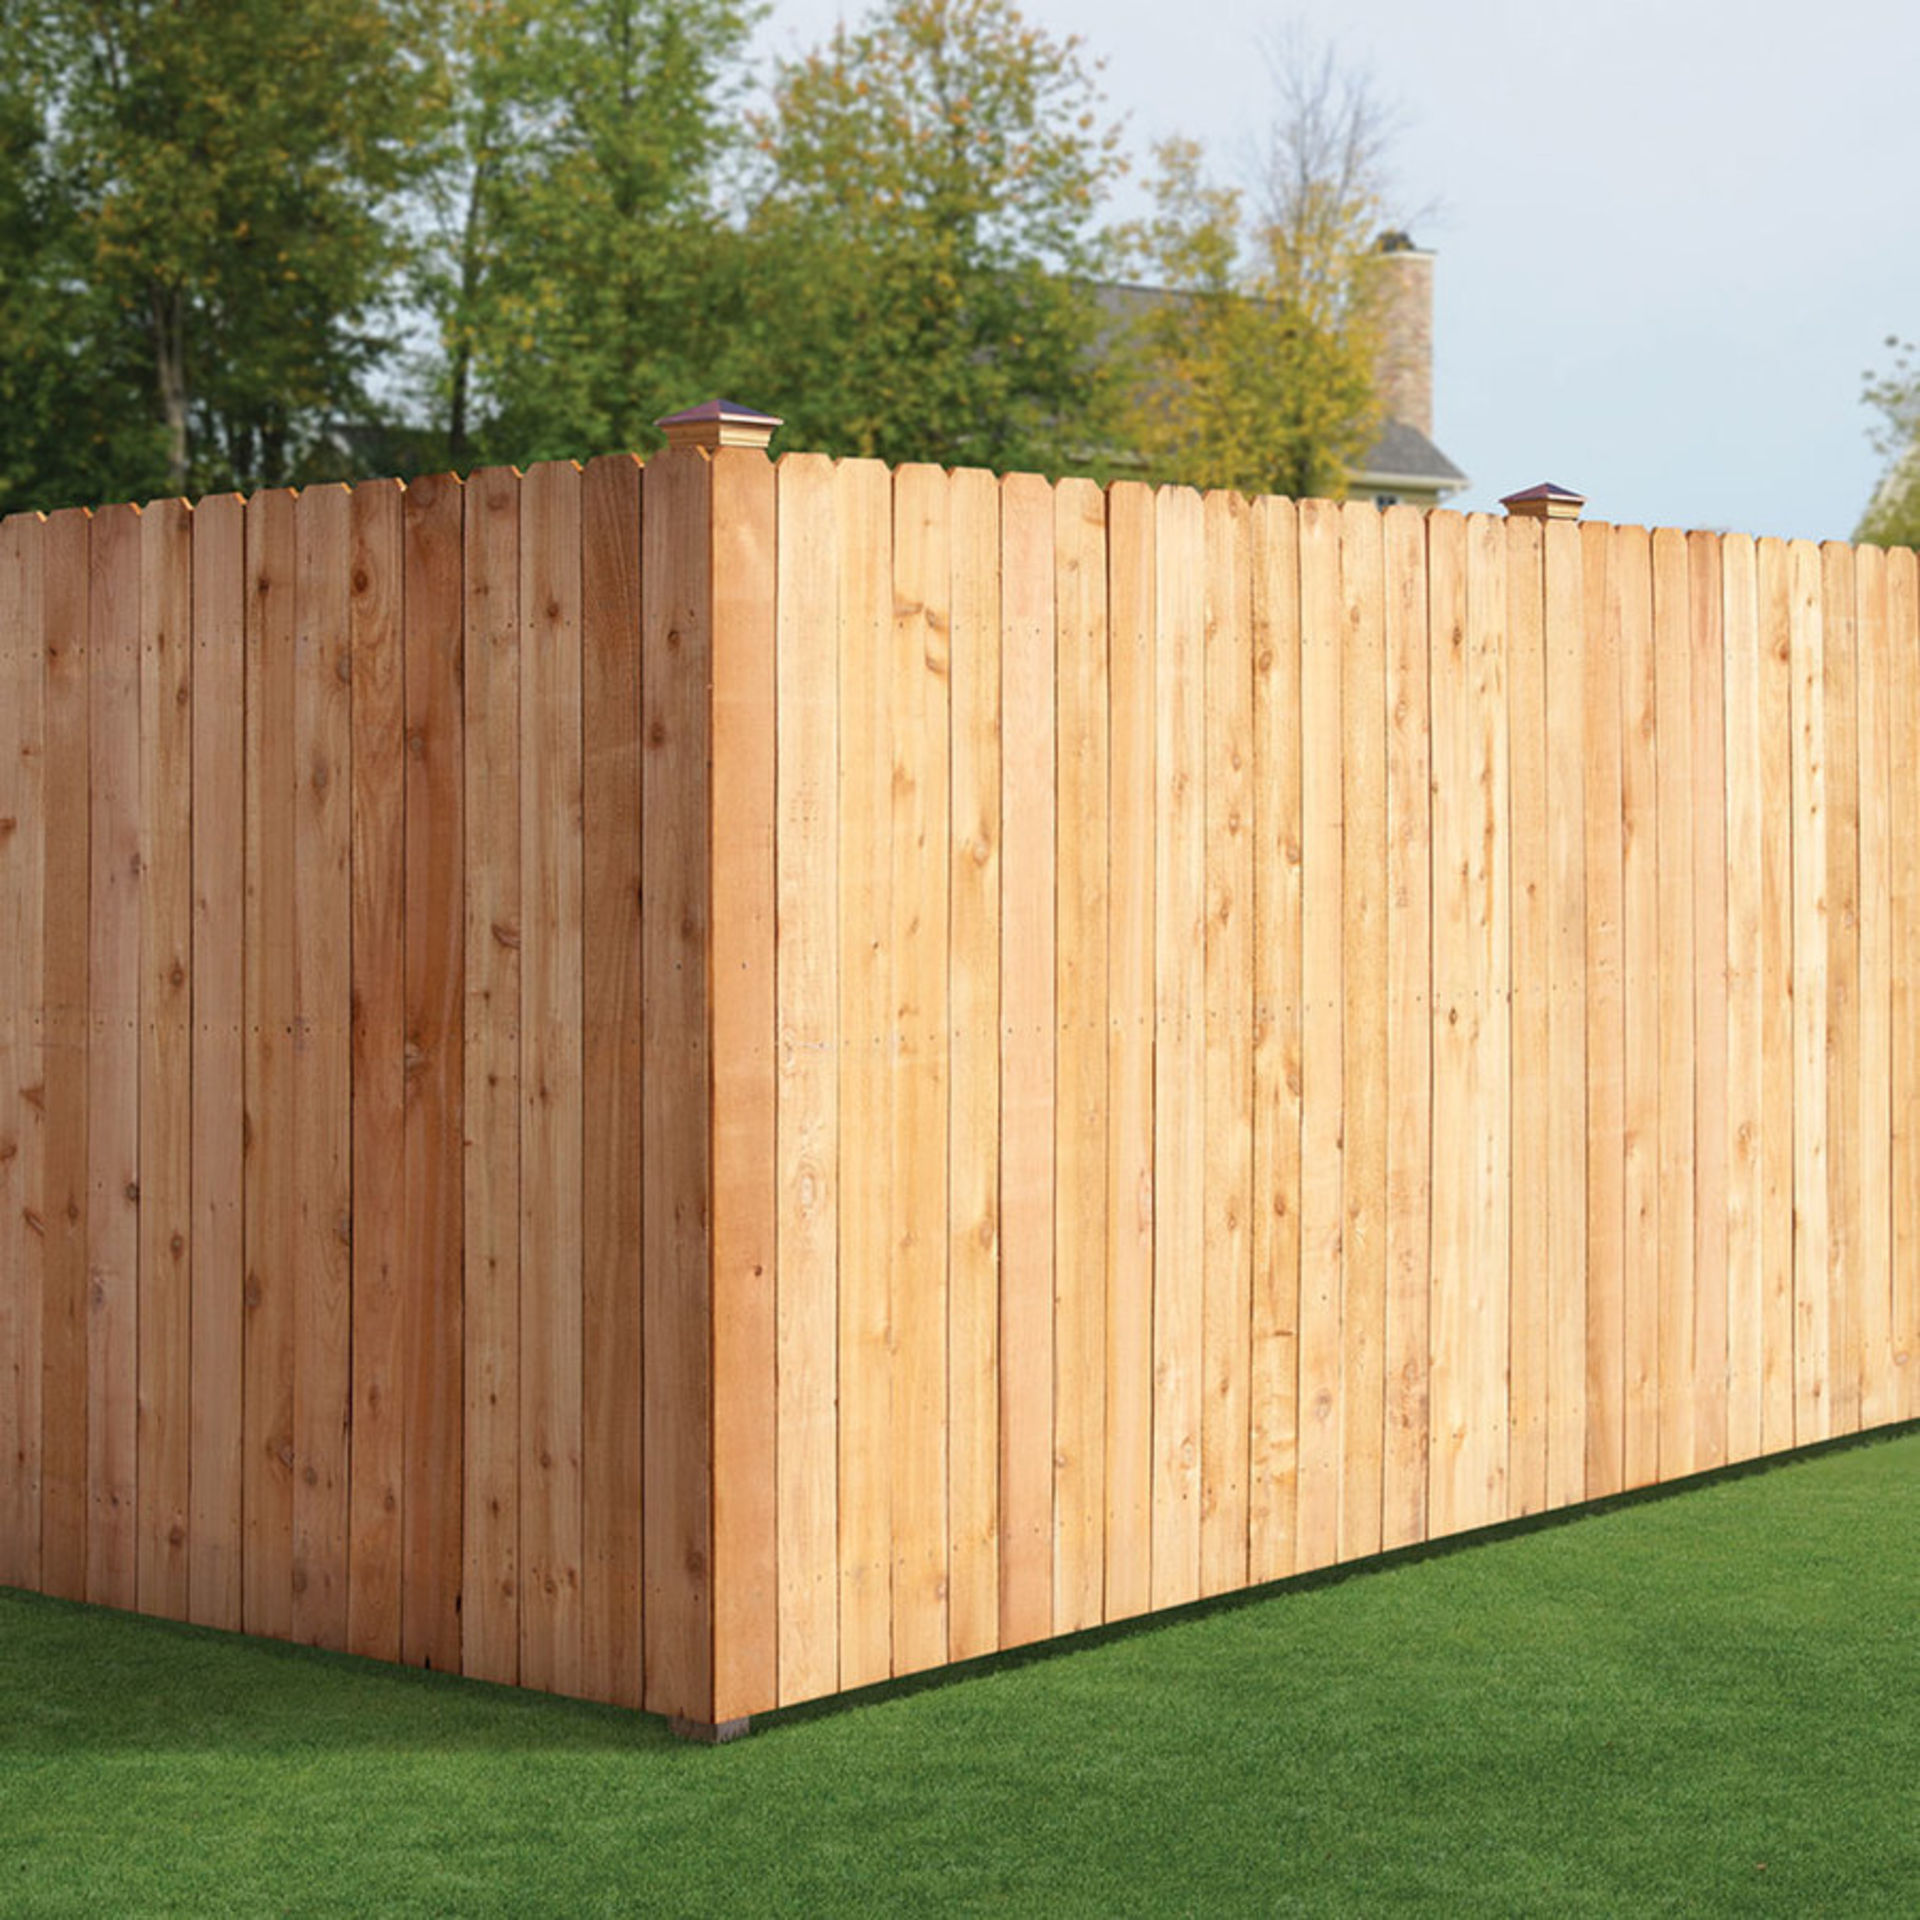 Are You Sure You Own Your Fence?